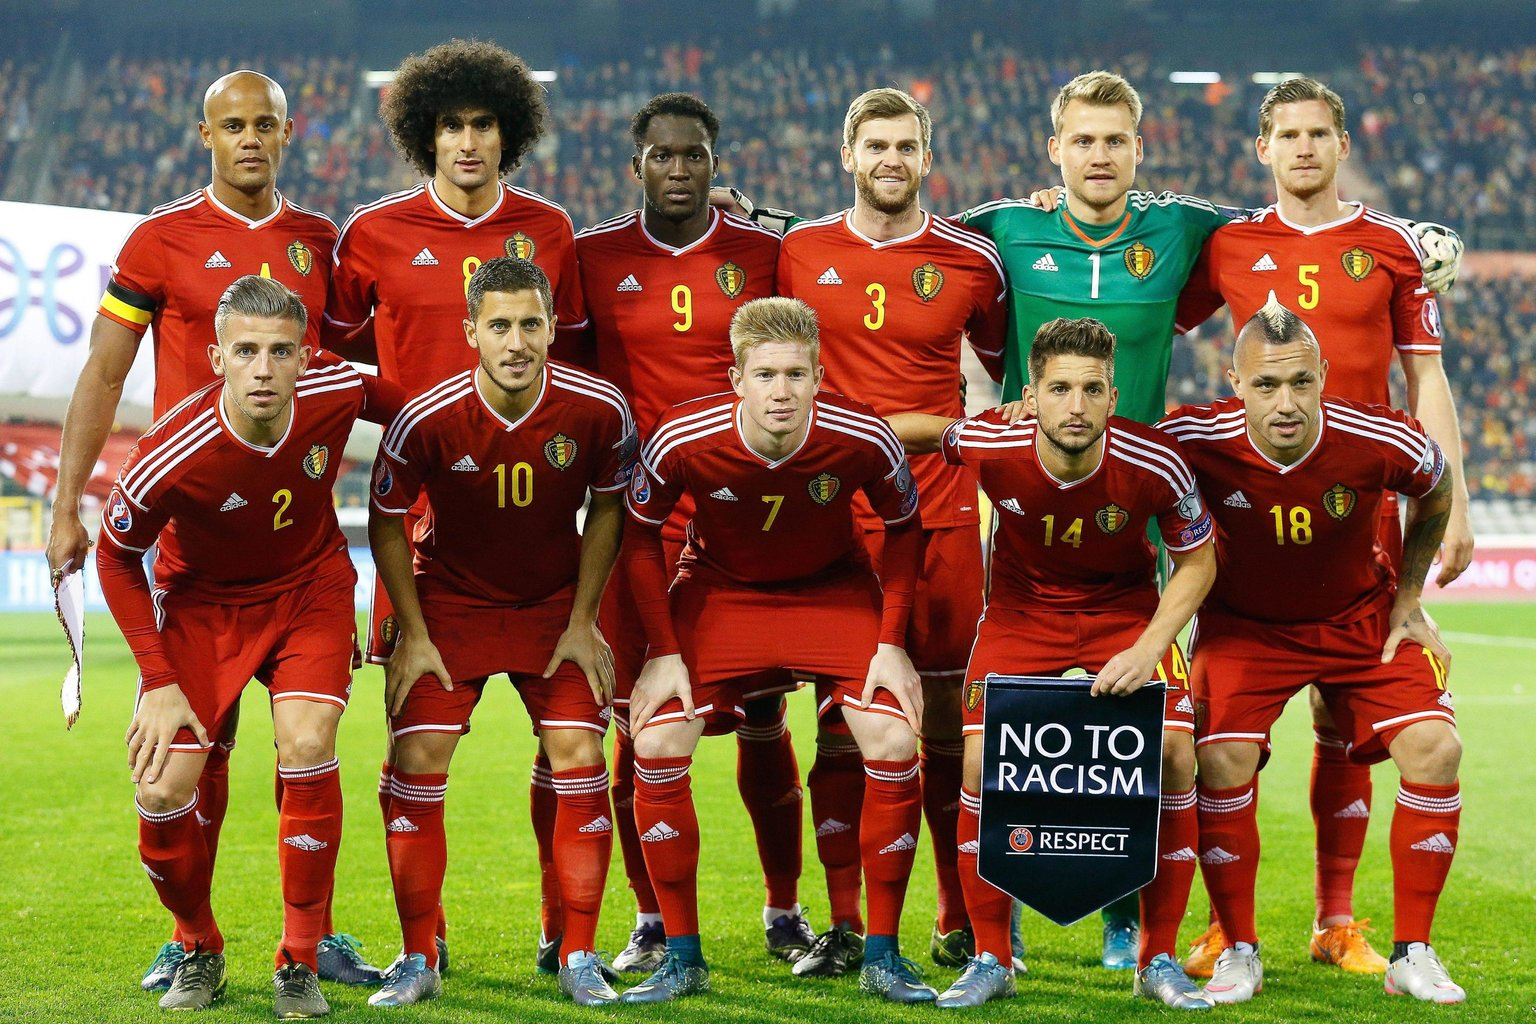 Euro 2016 - Belgium team profile